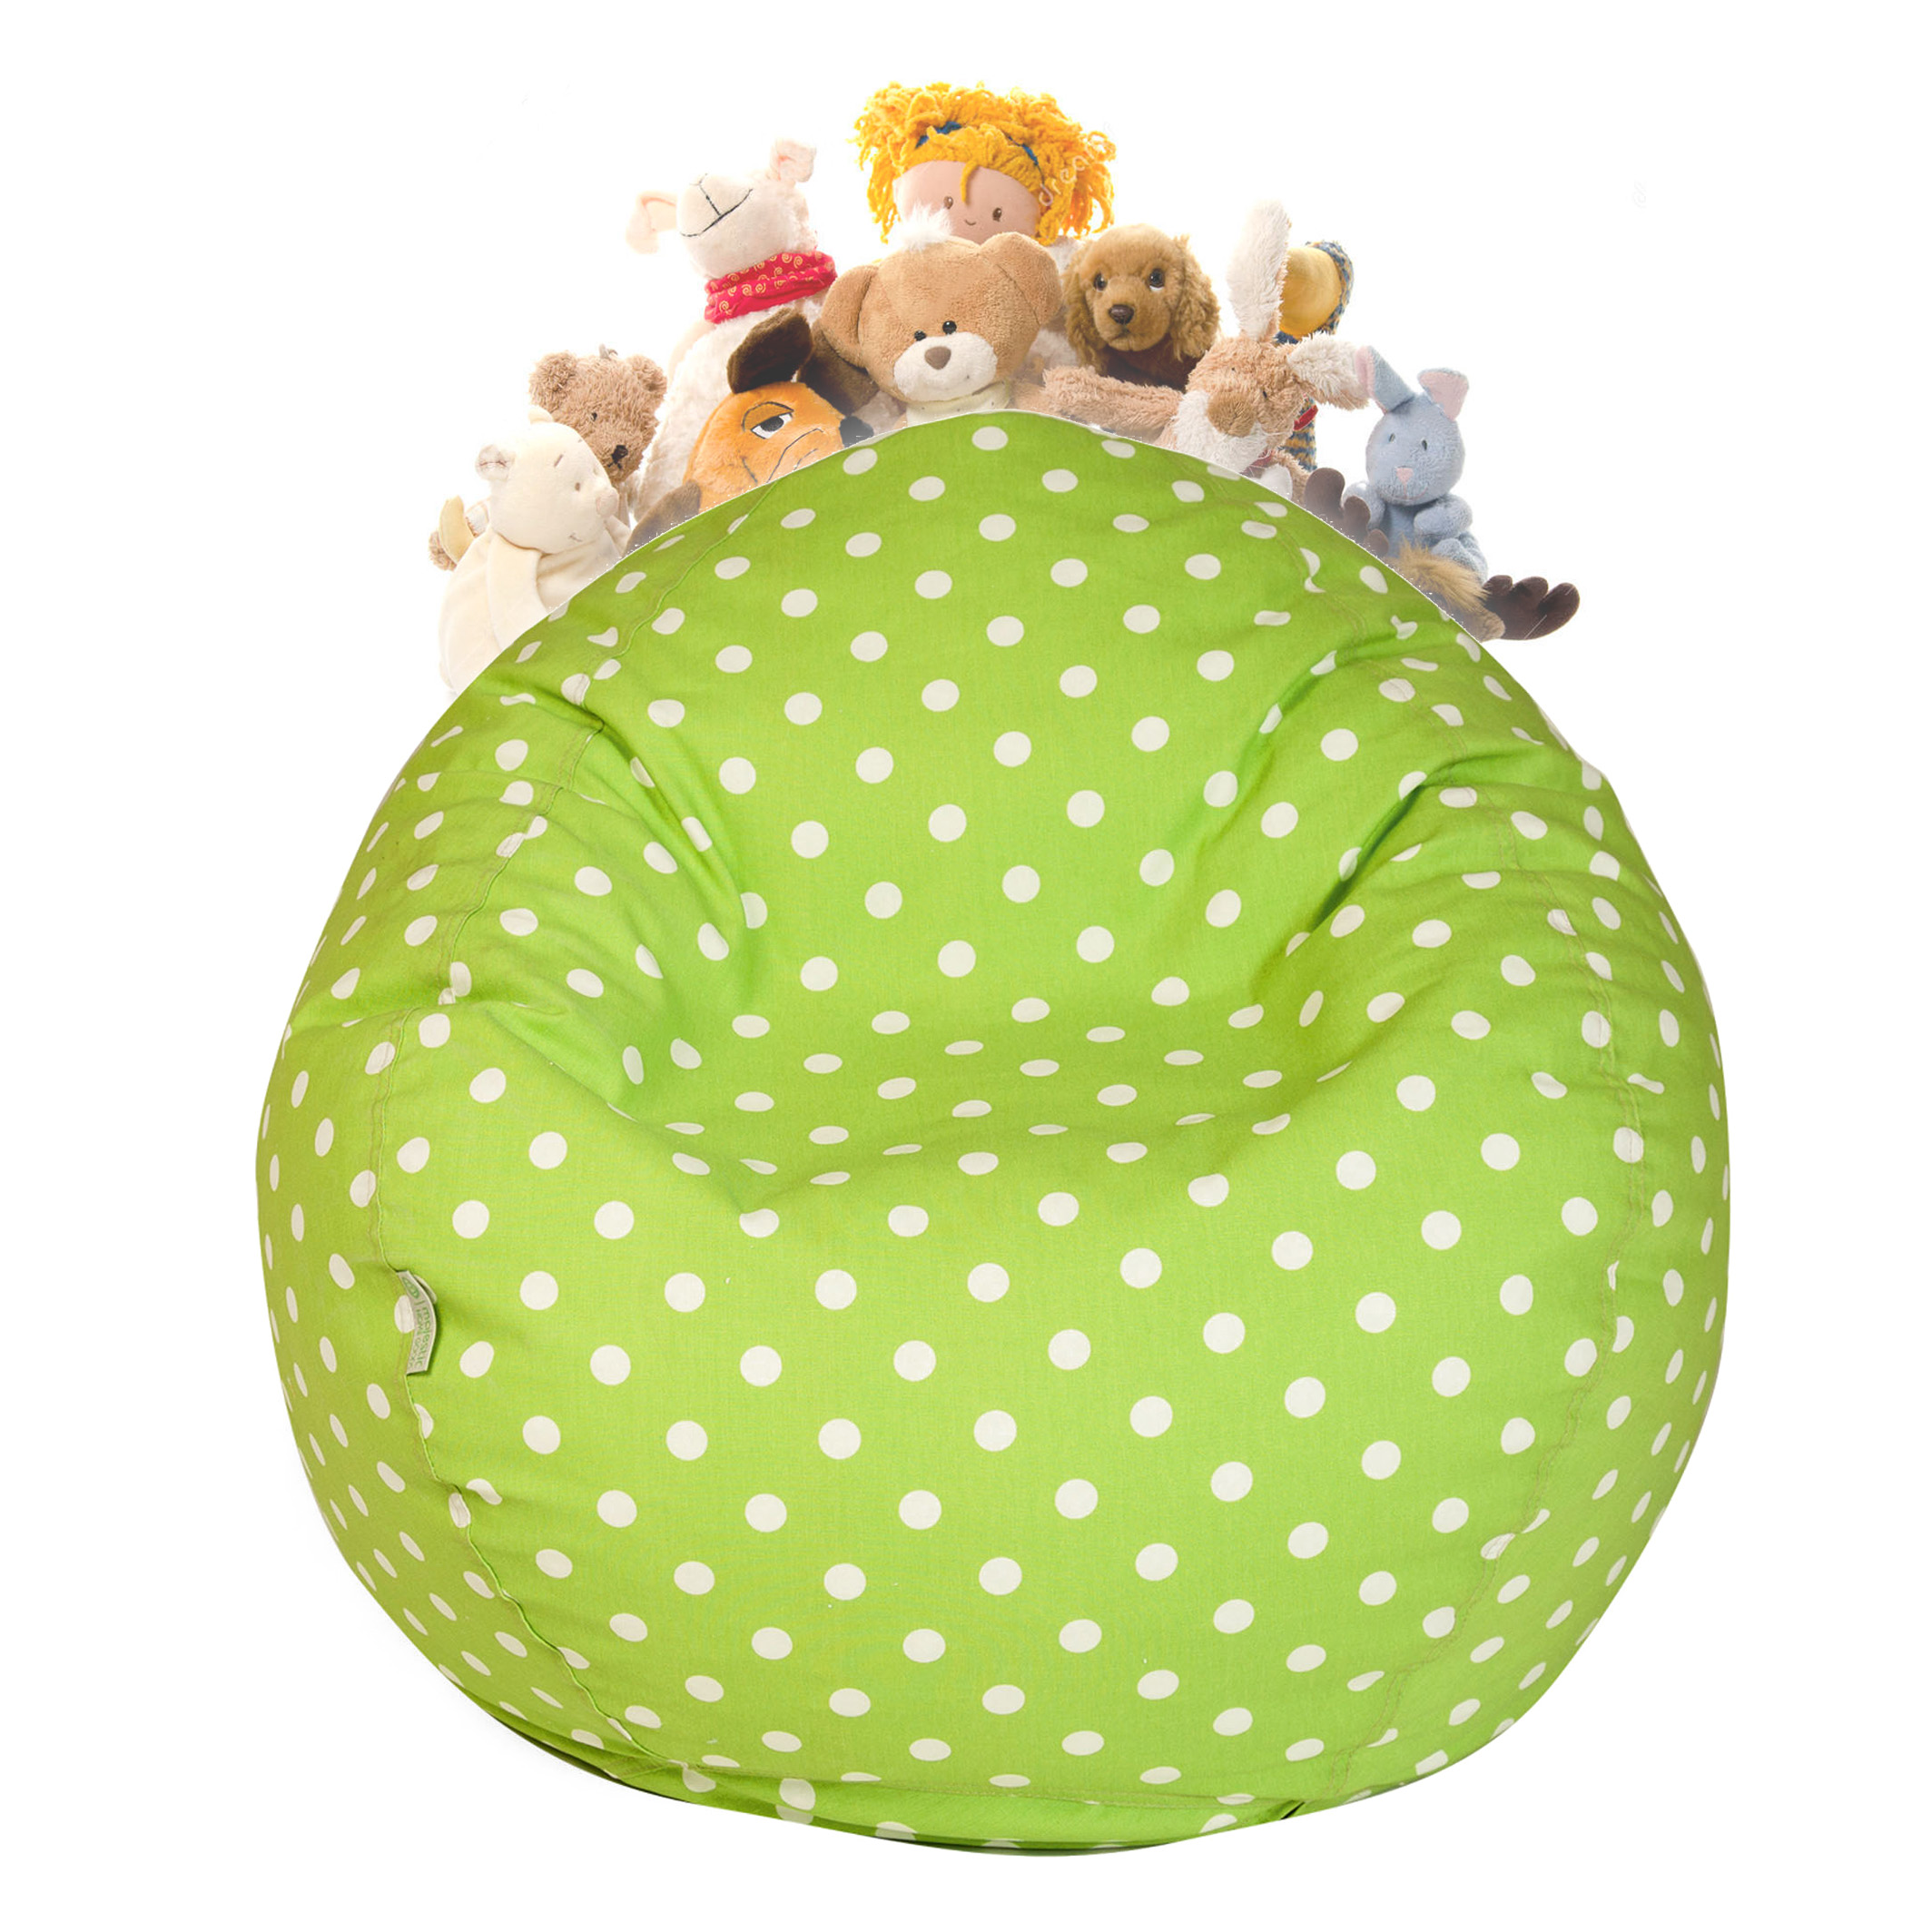 Majestic Home Goods Small Polka Dots Stuffed Animal Storage Bean Bag Chair Cover w/ Transparent Mesh Base, Multiple Colors